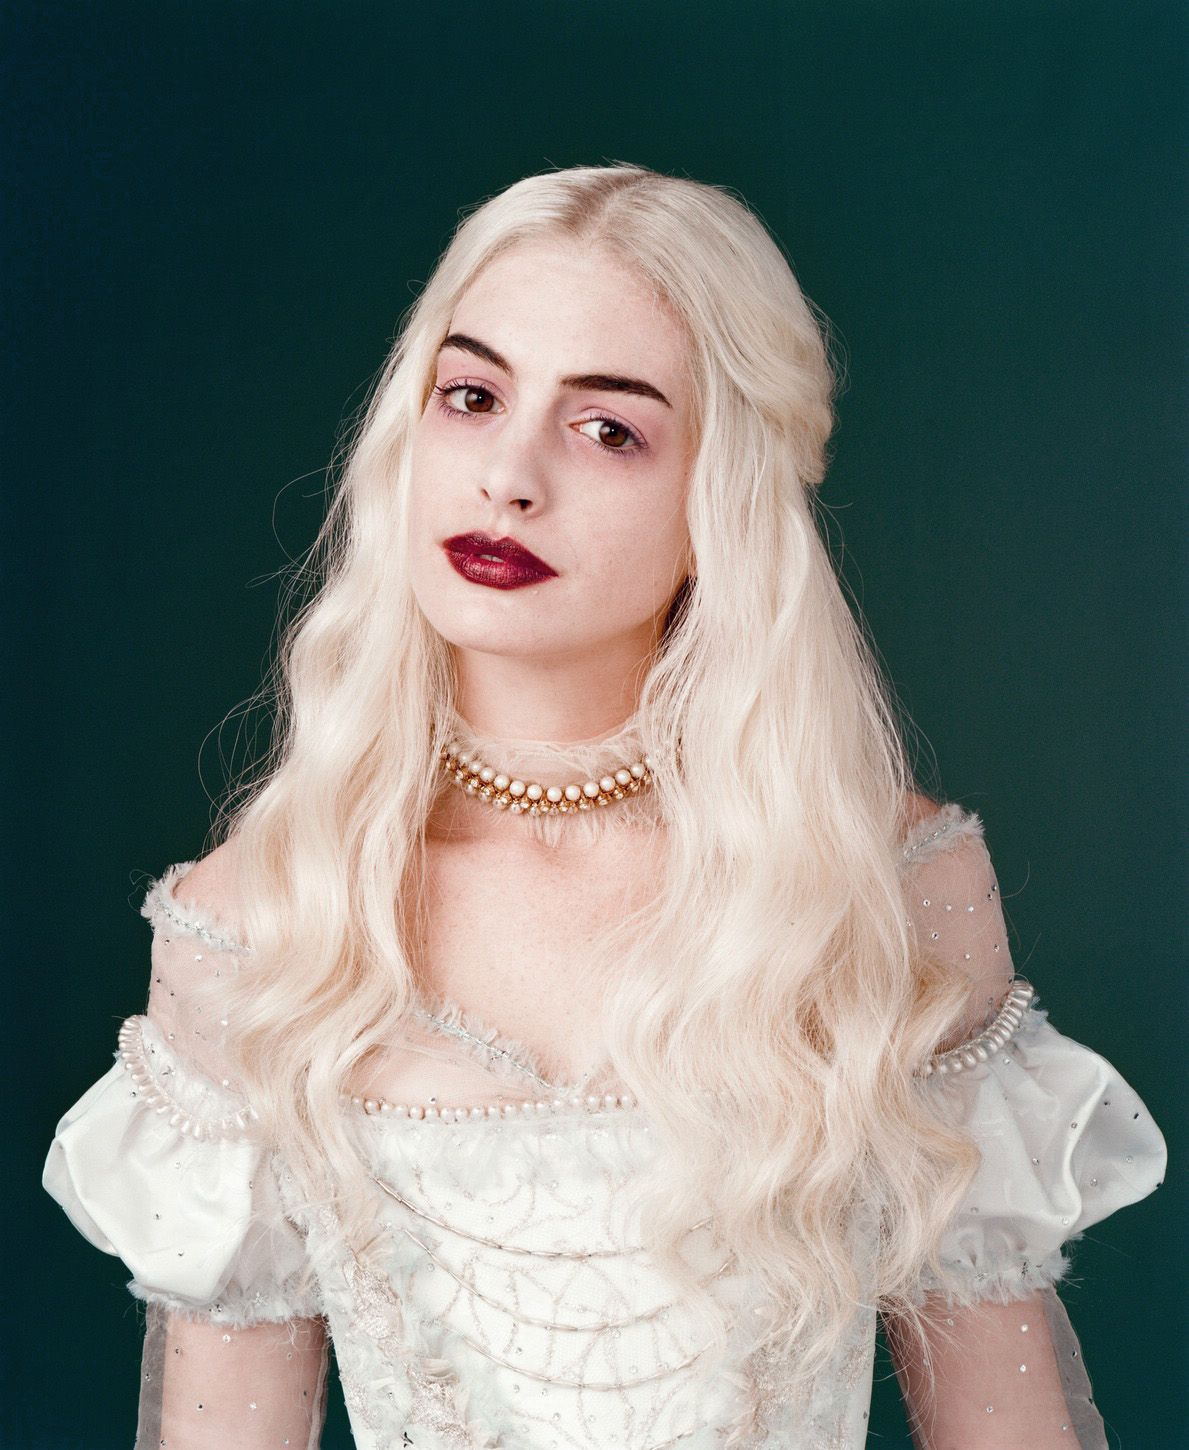 Im im images of anne hathaway - Anne Hathaway As The White Queen In Alice In Wonderland